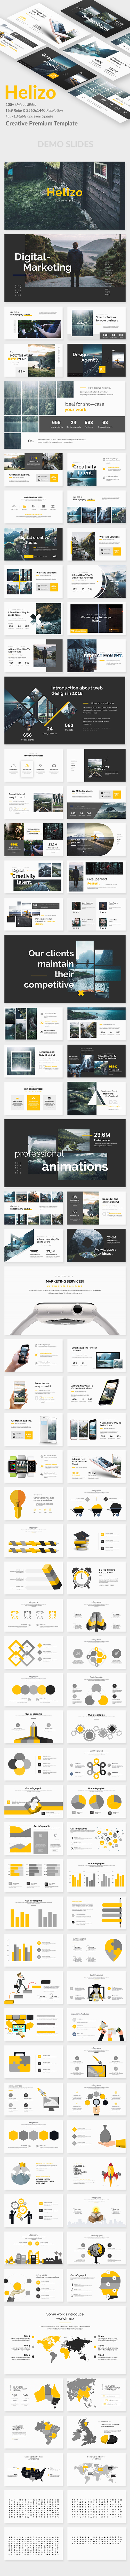 Helizo Premium Creative Design Powerpoint Template - Creative PowerPoint Templates